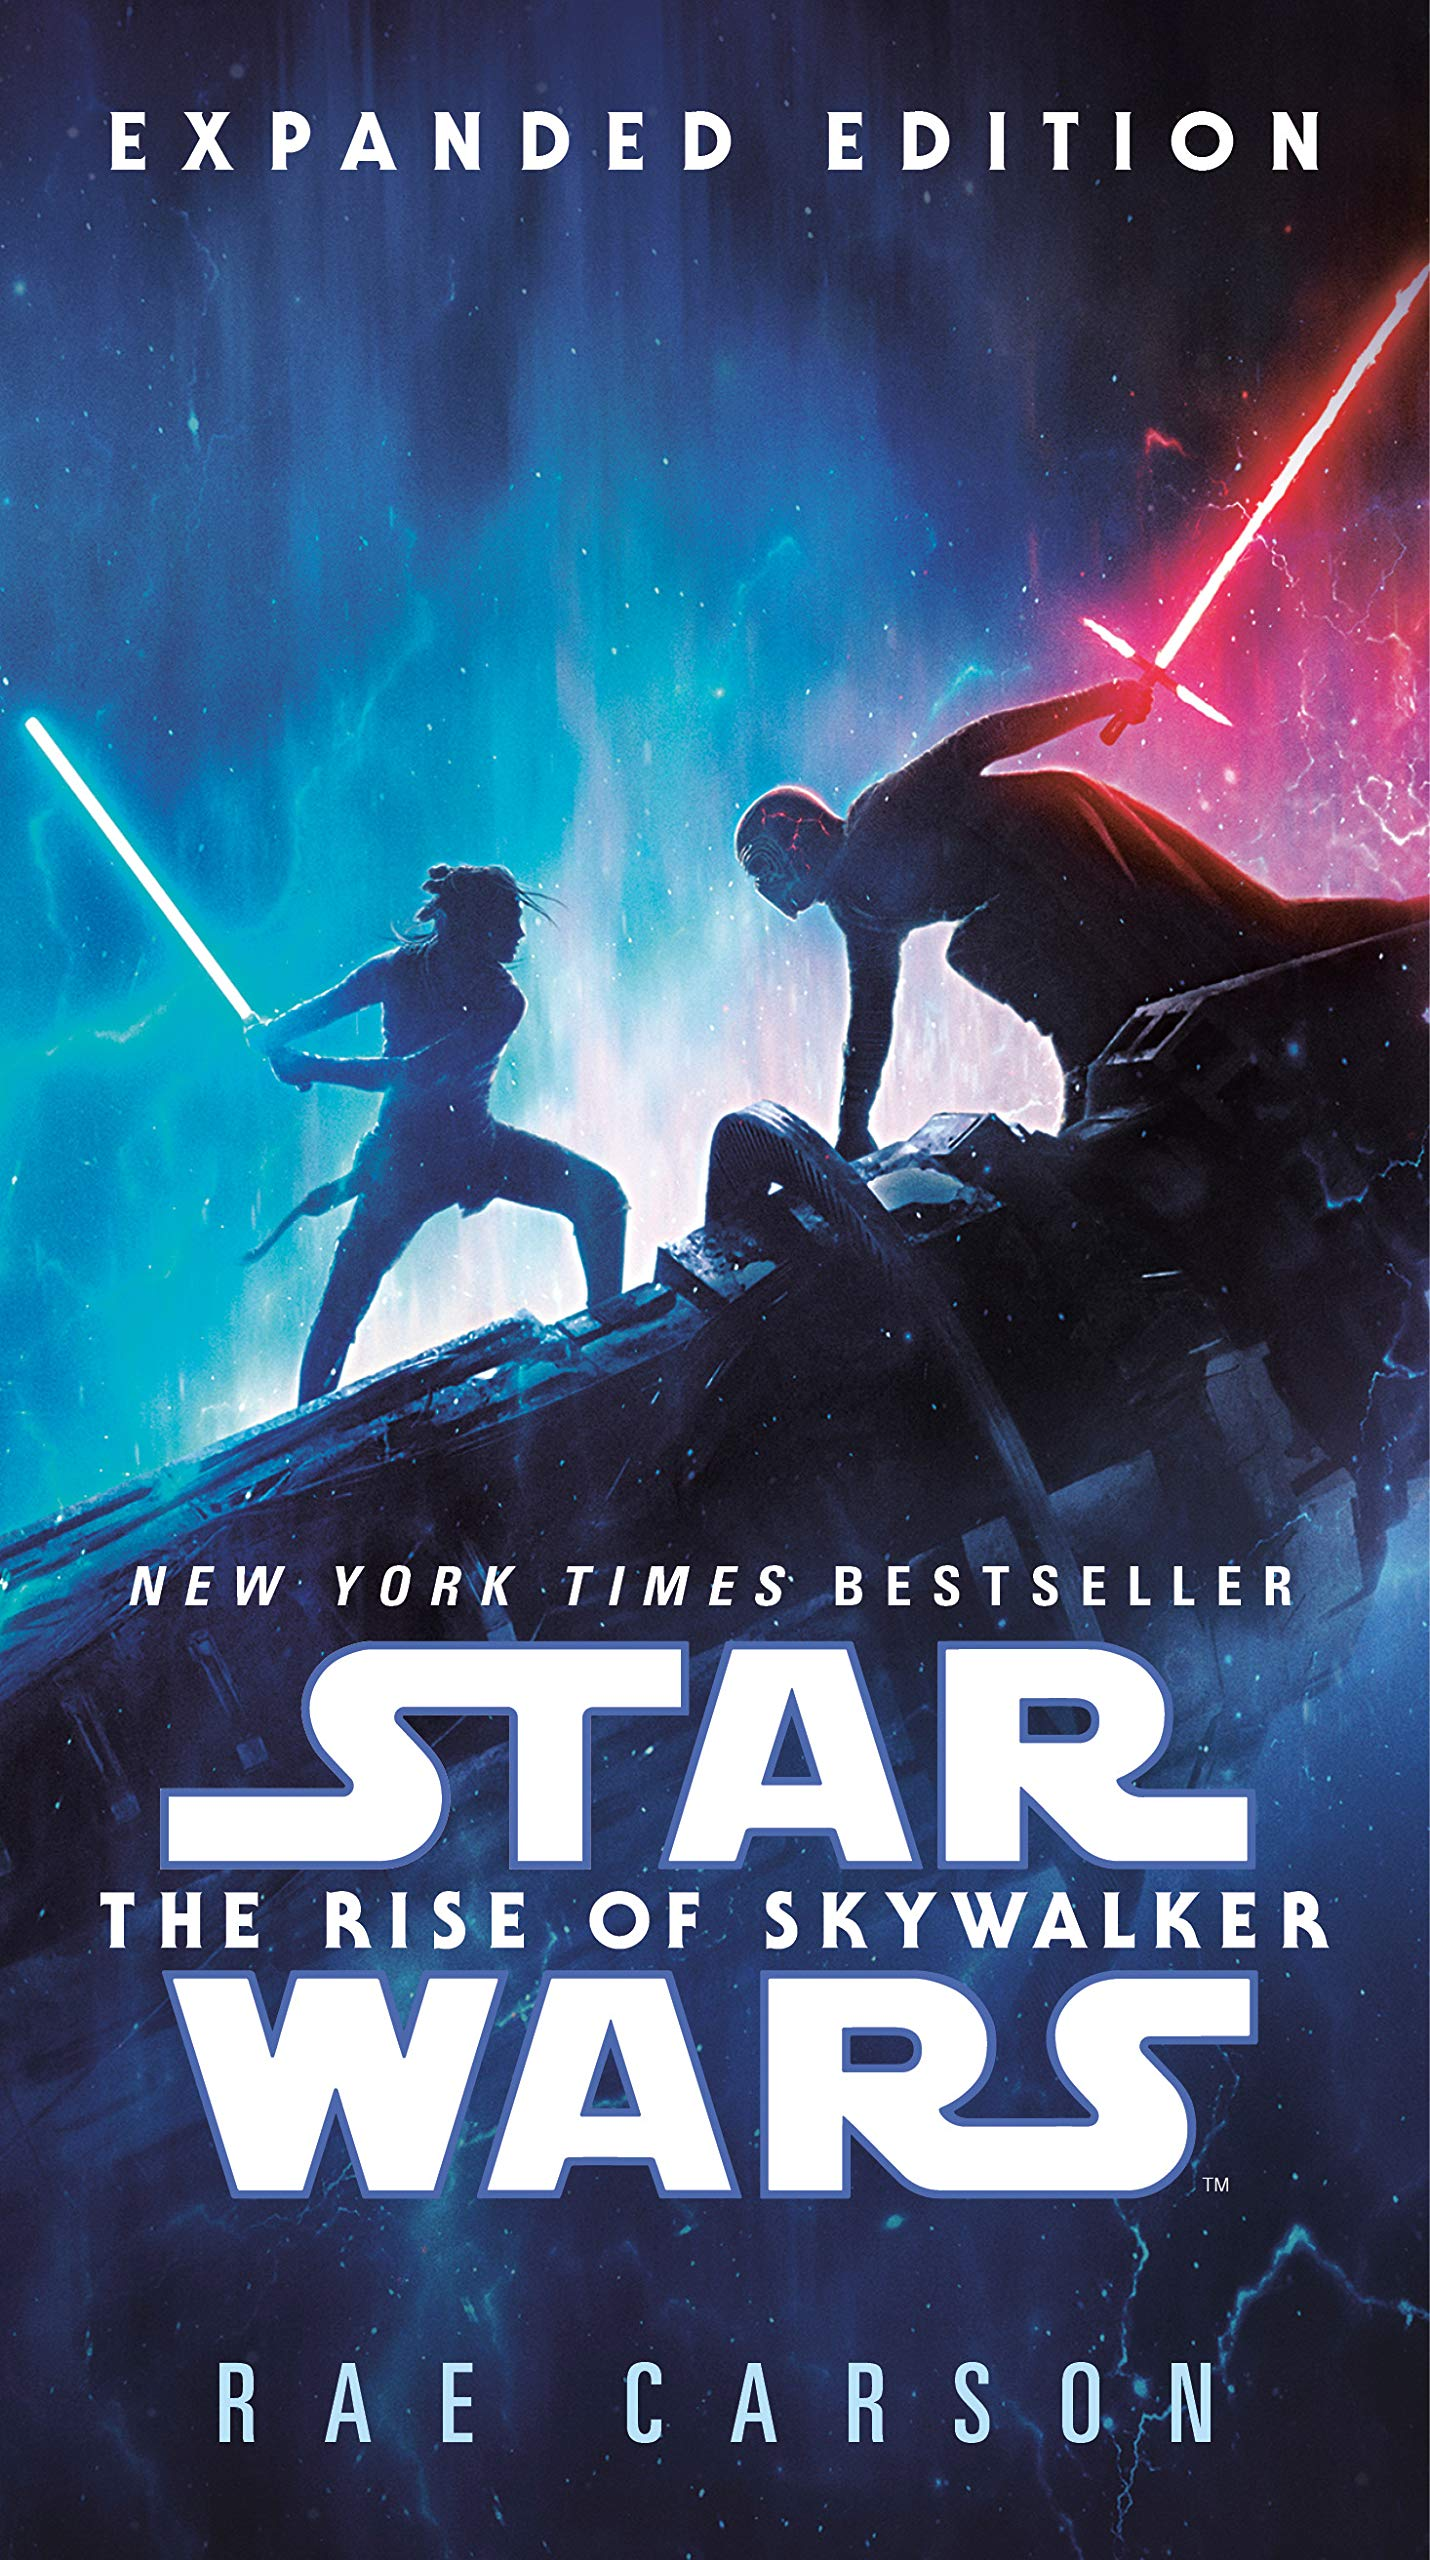 Star Wars: The Rise of Skywalker Expanded Edition (paperback)